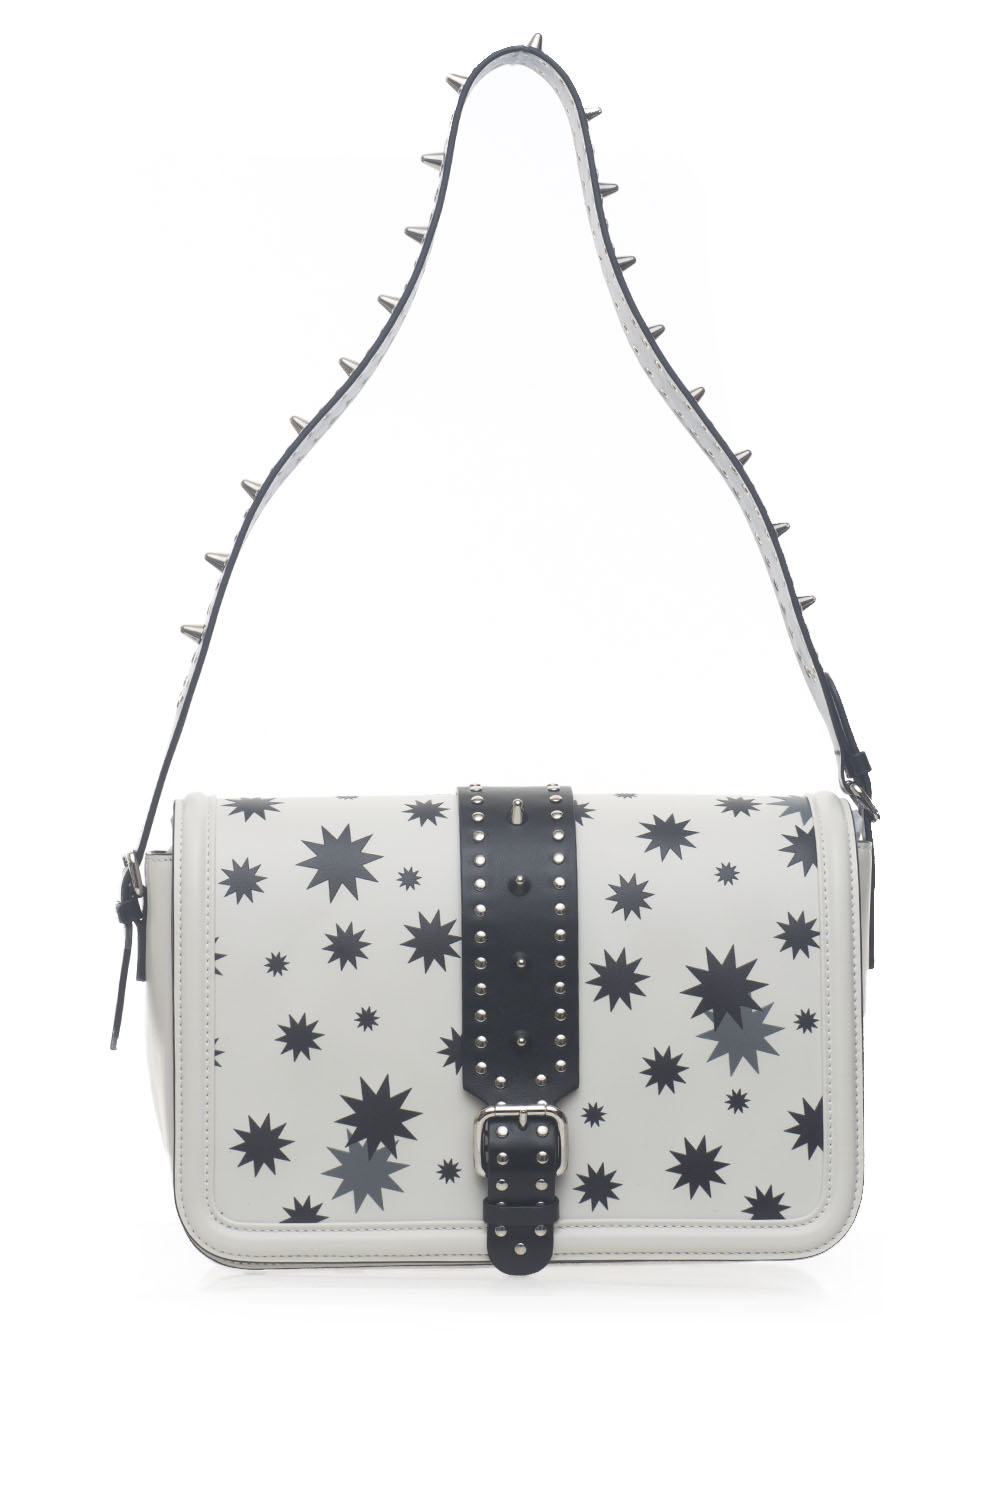 c911293ffb Medium-size leather bag Red Valentino Colore: bianco. Product:  RQ2B0B39-ITC22G Availability: In stock